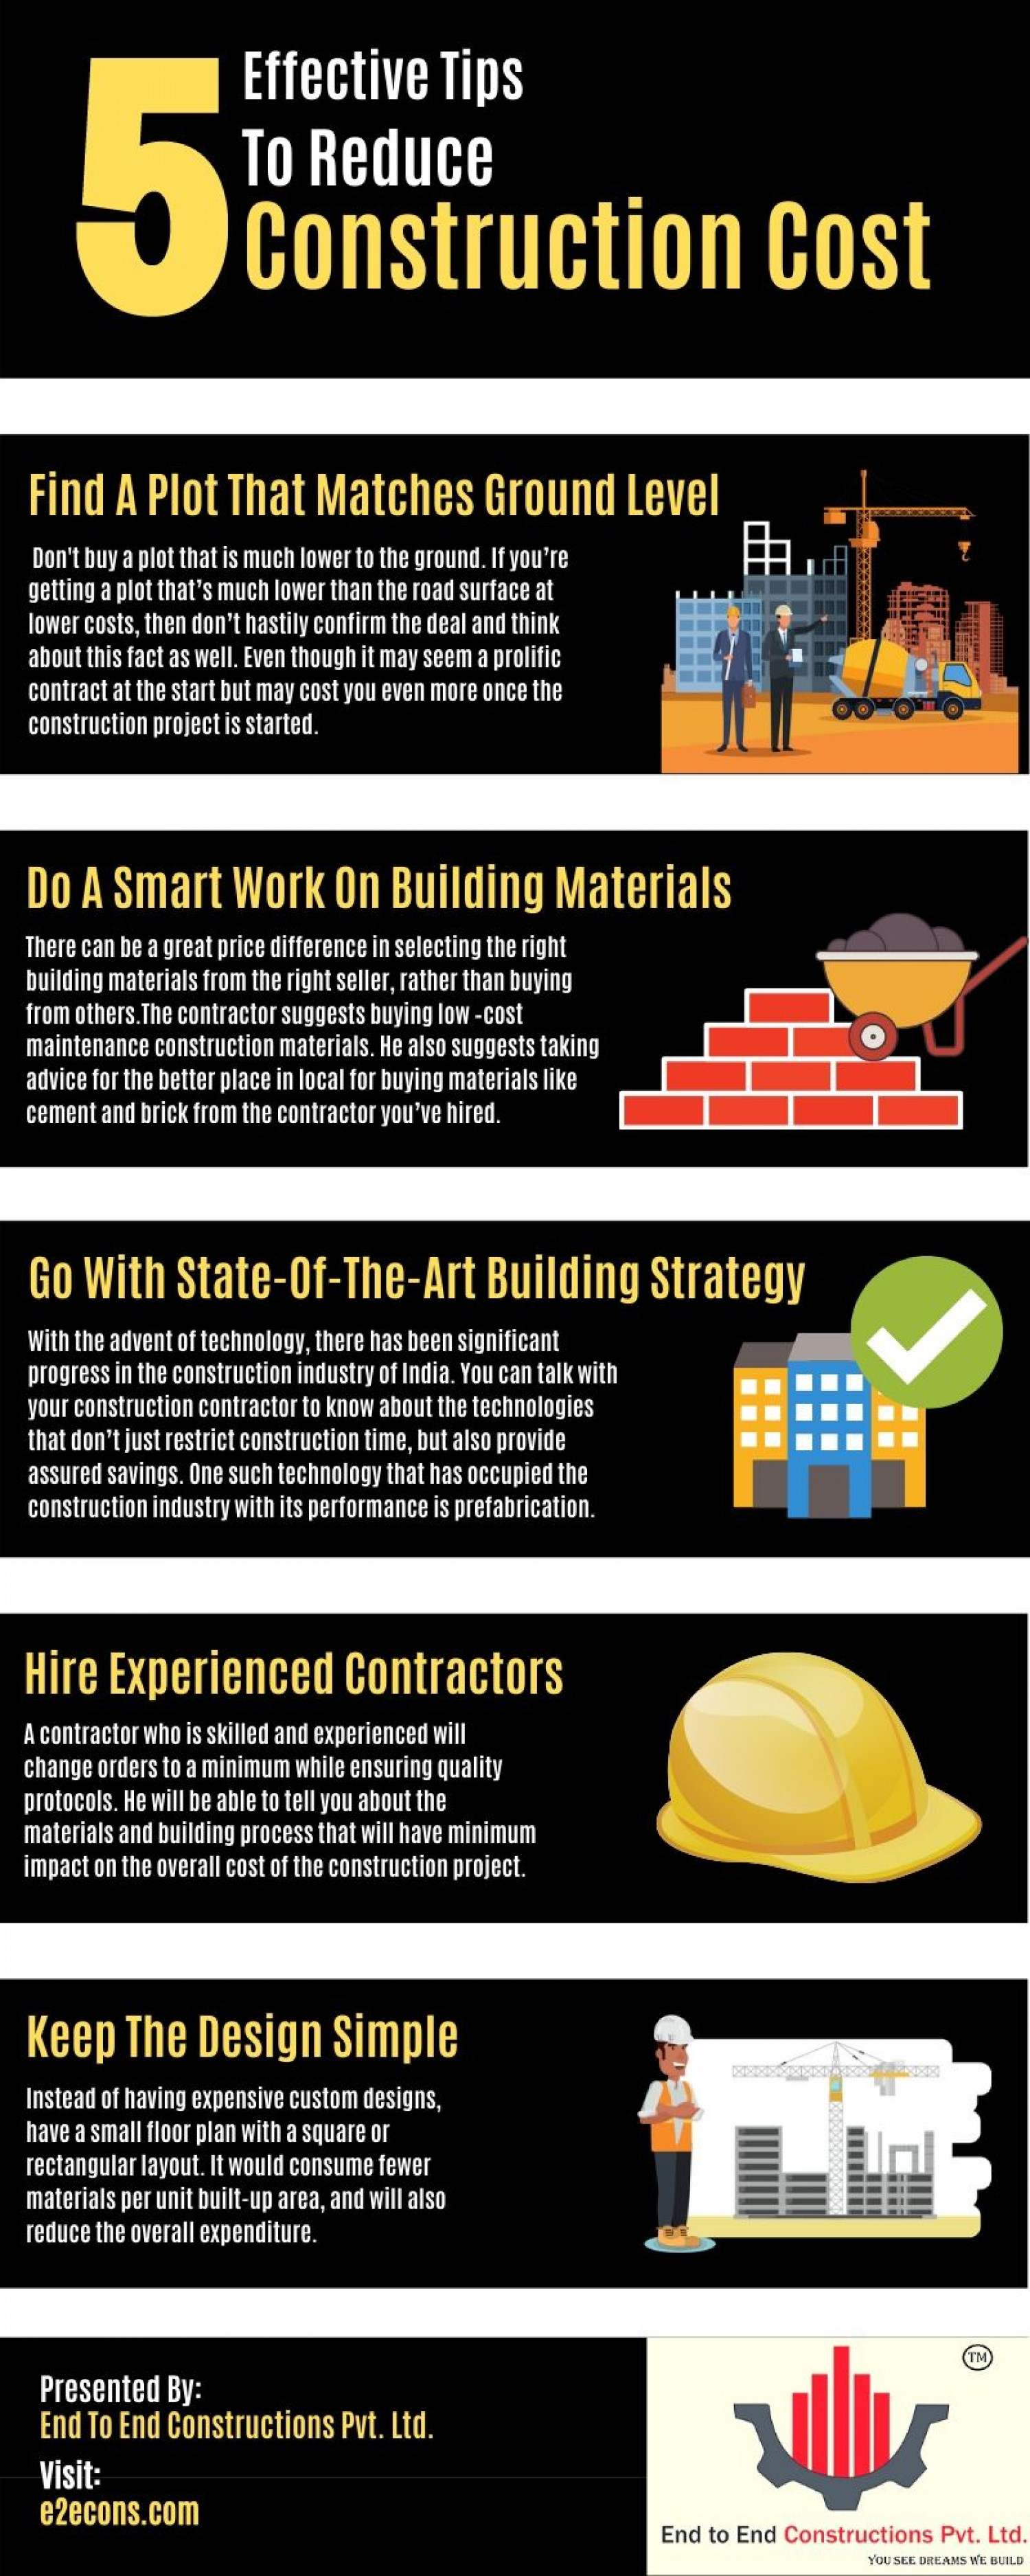 5 Effective Tips To Reduce Construction Cost Infographic